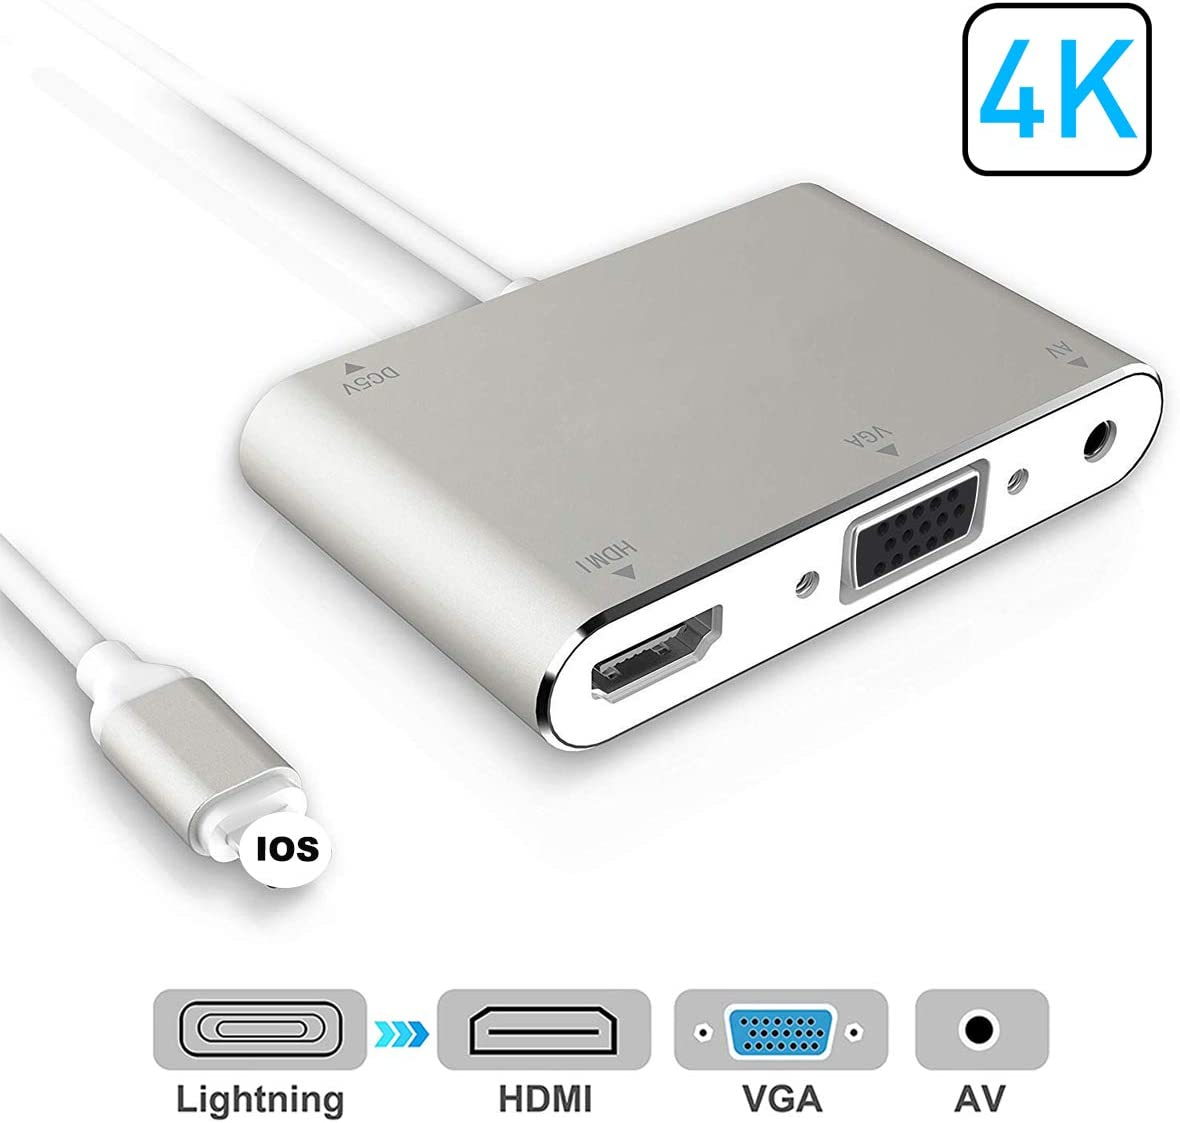 Silver HDMI VGA AV Adapter Converter 2020 Latest 4 in 1 Plug and Play Digtal AV Adapter Compatible for i-Phone X 8 8Plus//7//7Plus//6//6s//6s Plus//5//5s i-Pad i-Pod to HDTV Projector Monitor